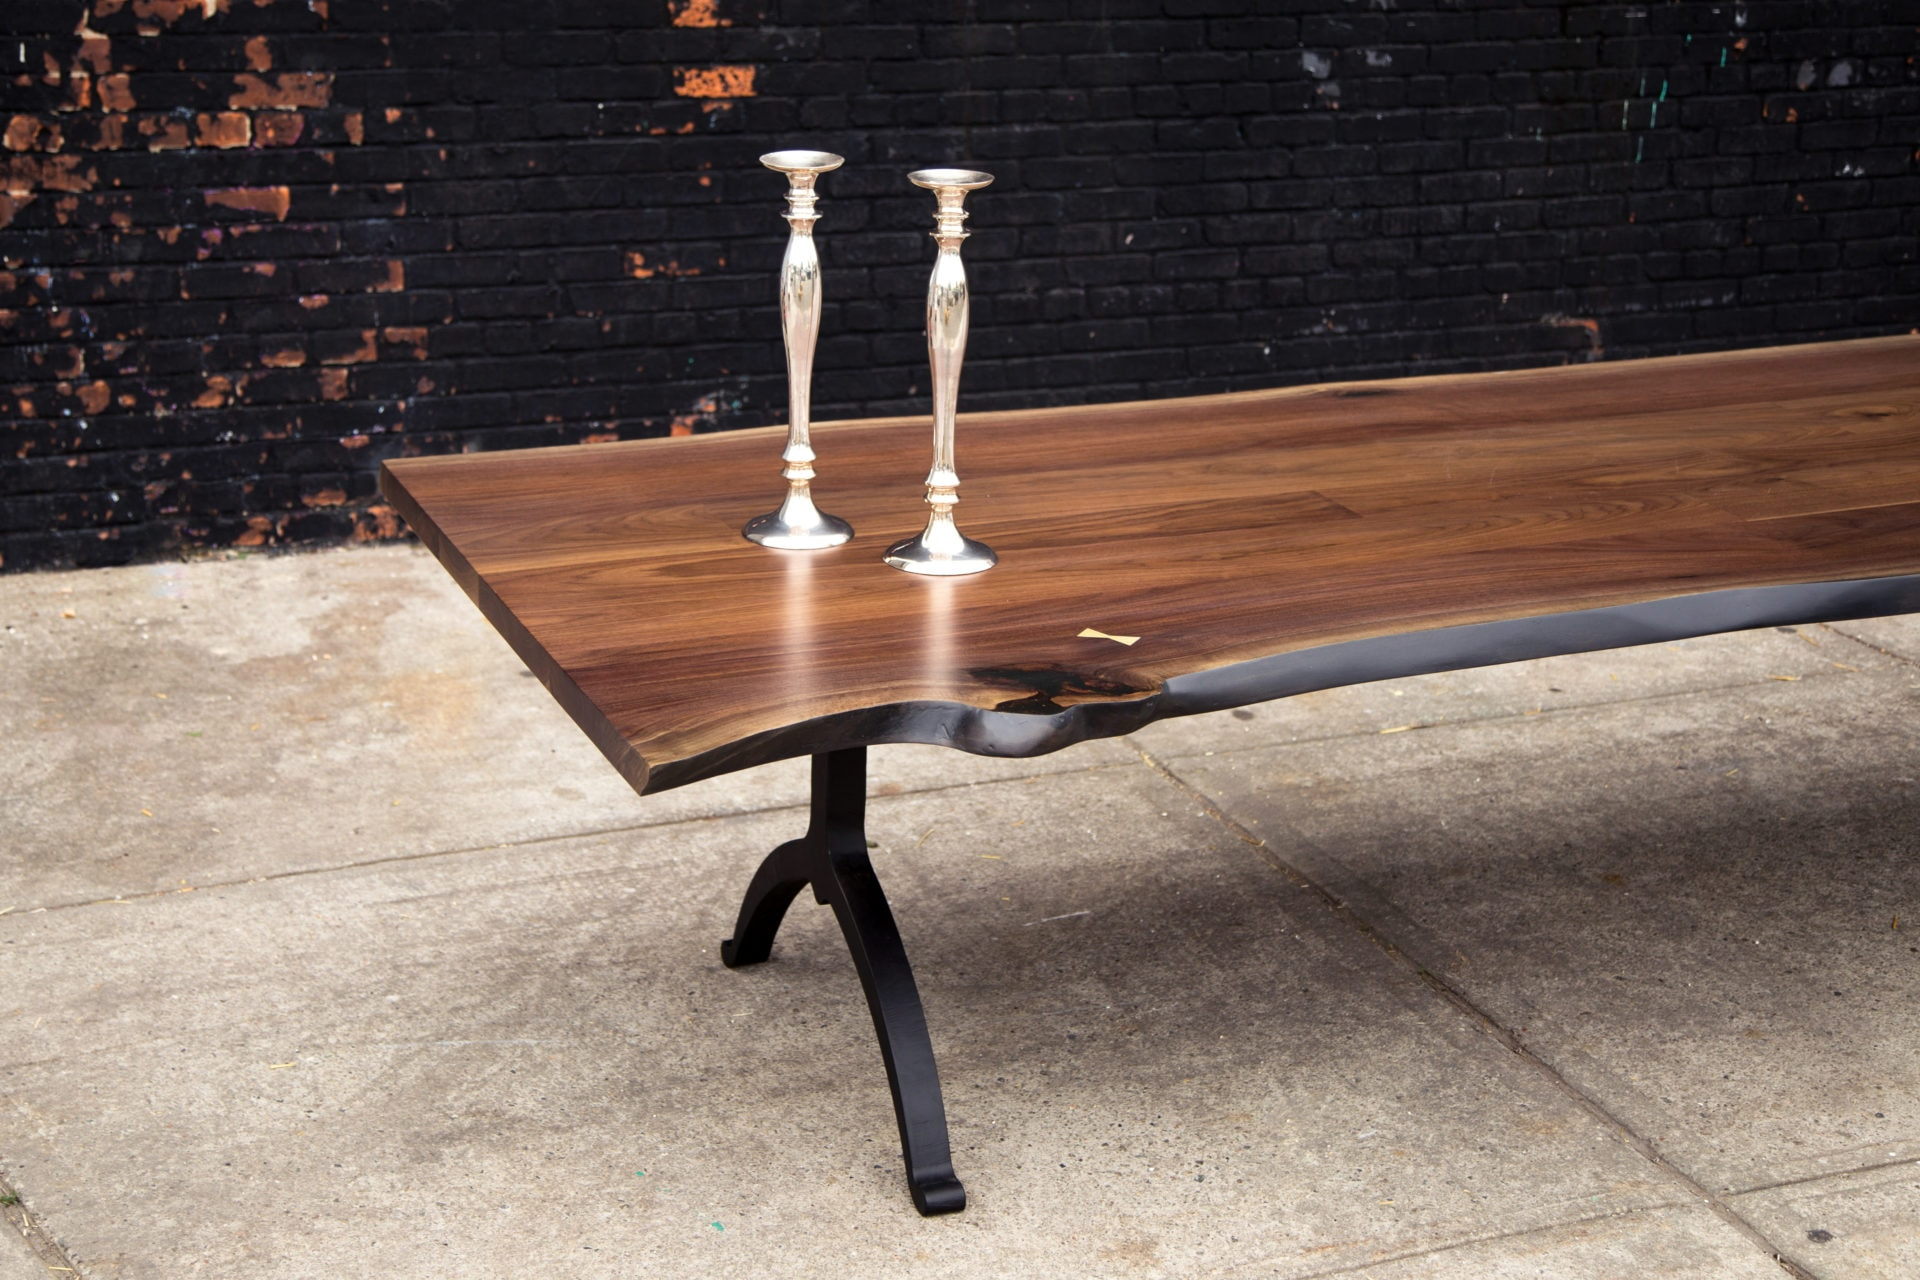 a SENTIENT American black walnut live edge table with blackened steel legs with two silver candlesticks on top